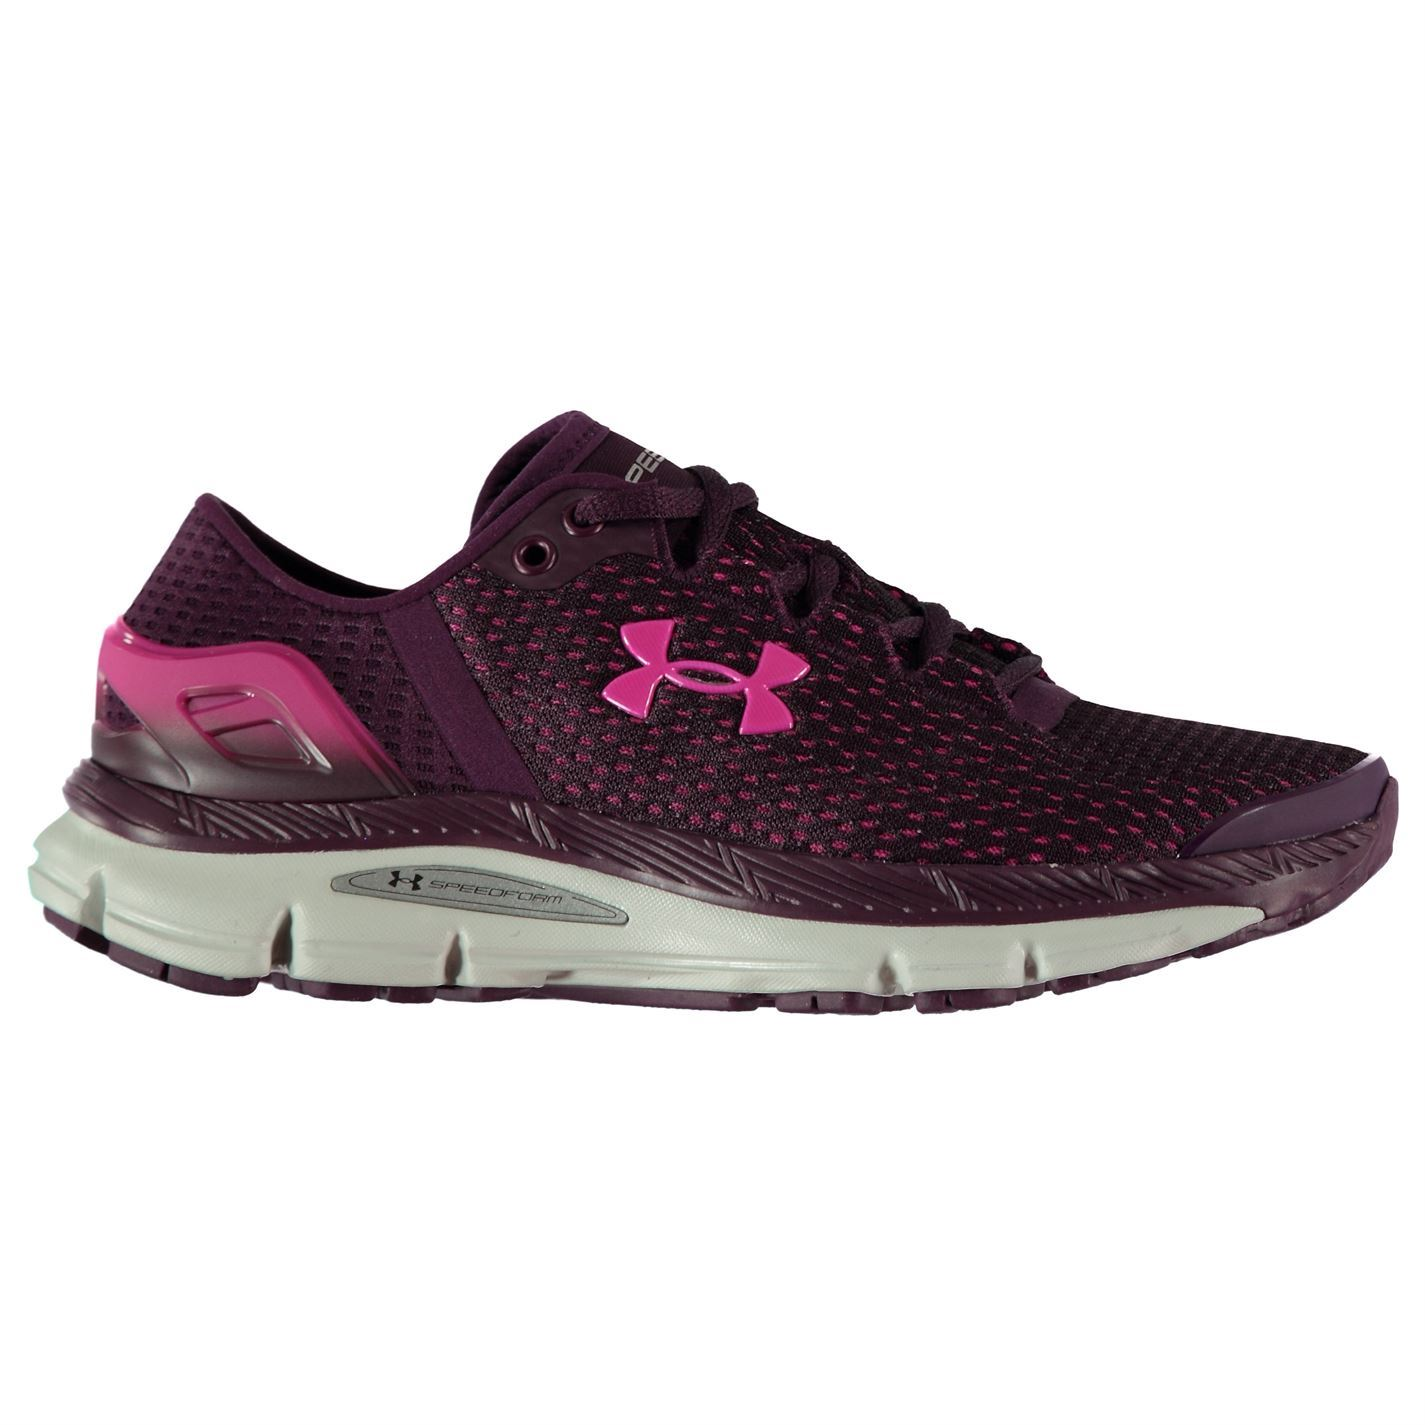 Under Armour Speedform Intake Running Shoes Womens Fitness Trainers Sneakers